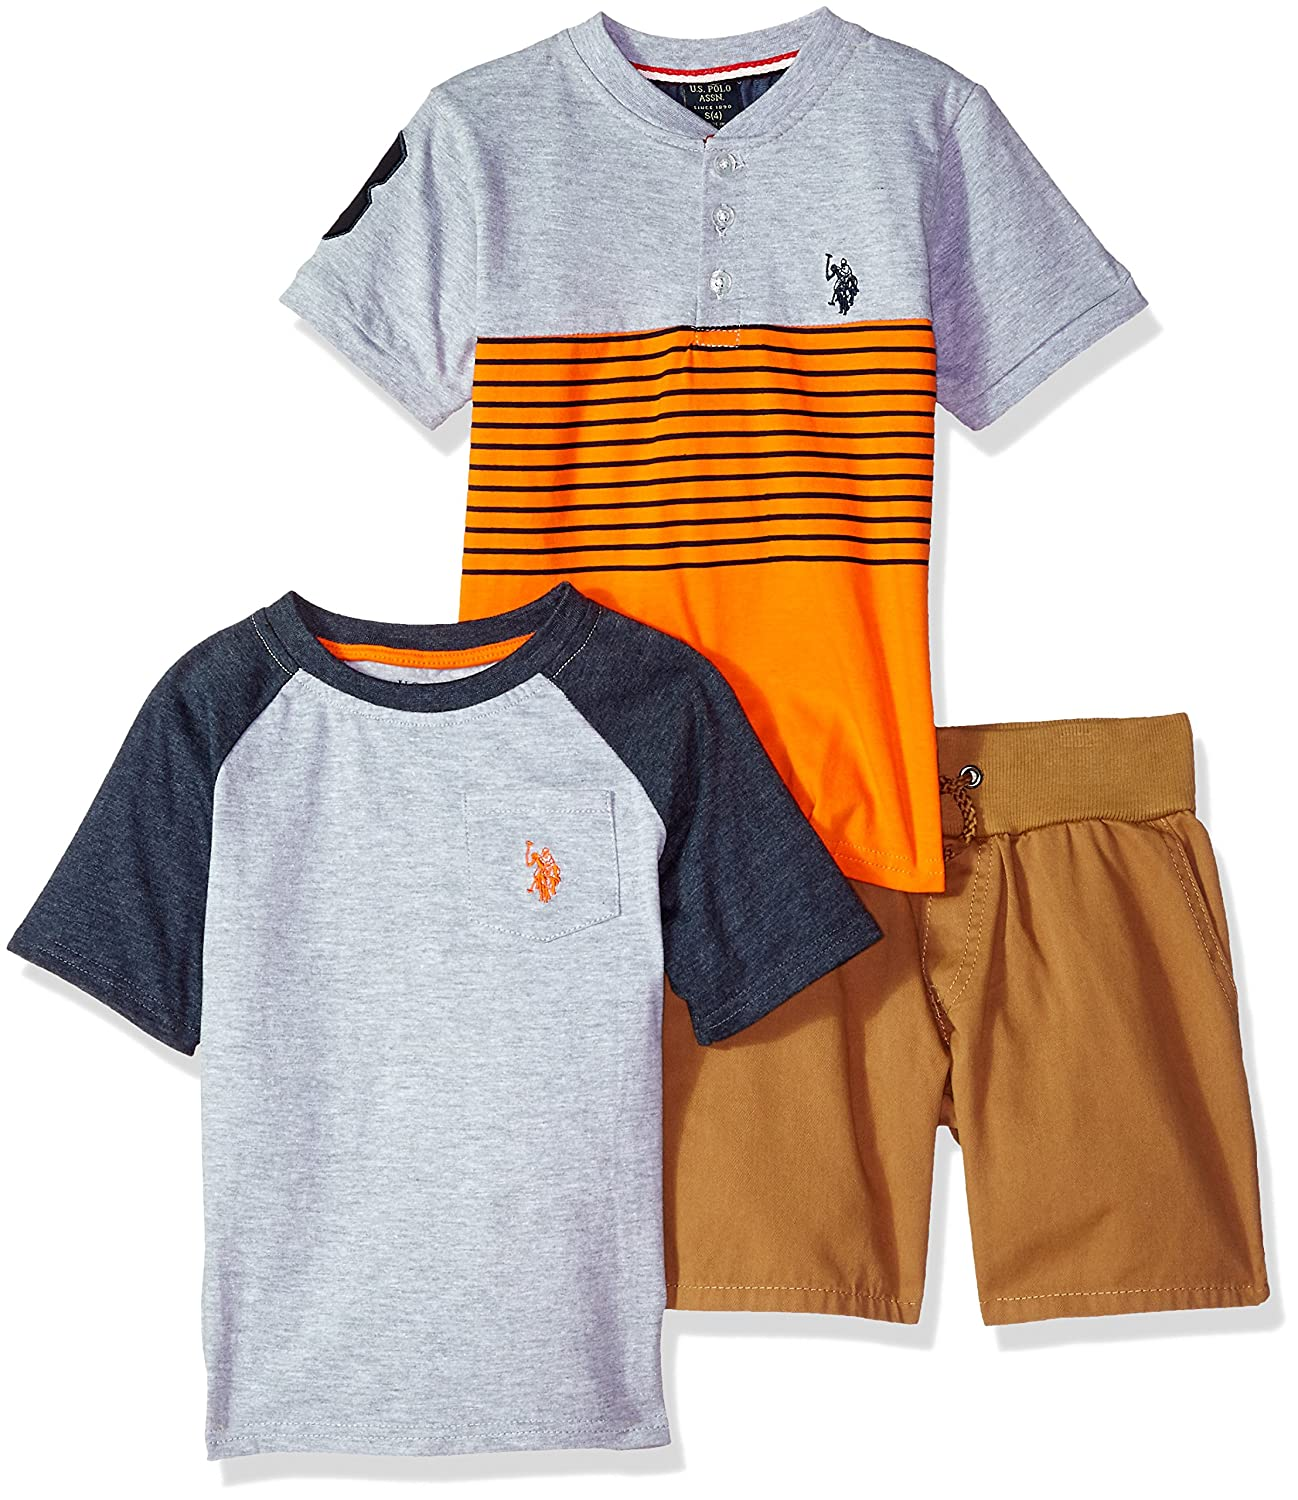 U.S. Polo Assn. Boys' T-Shirt and Short 3 Piece Set